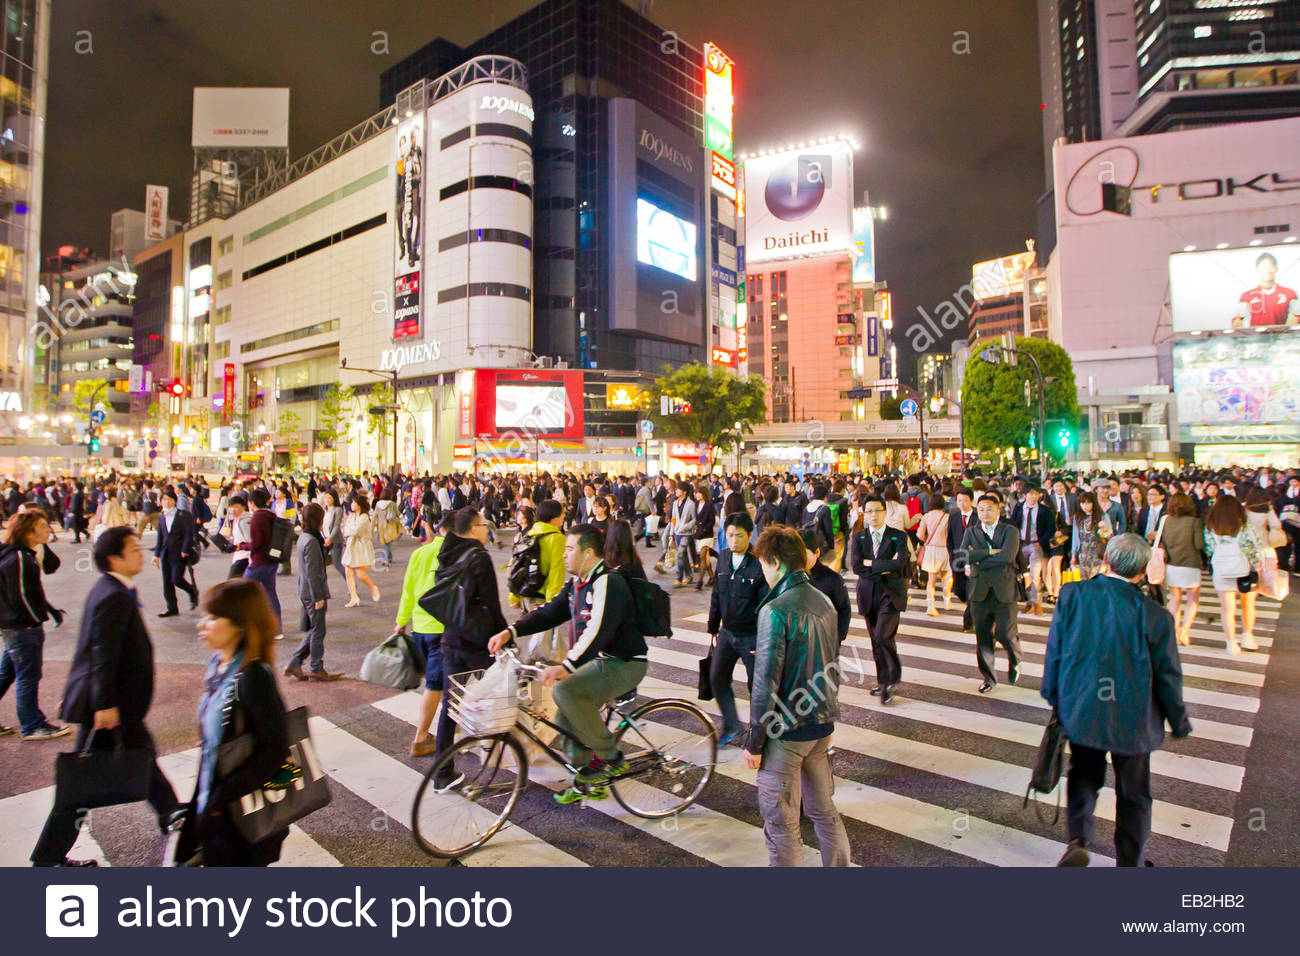 The famous Shibuya crossing where thousands of people cross each day. - Stock Image